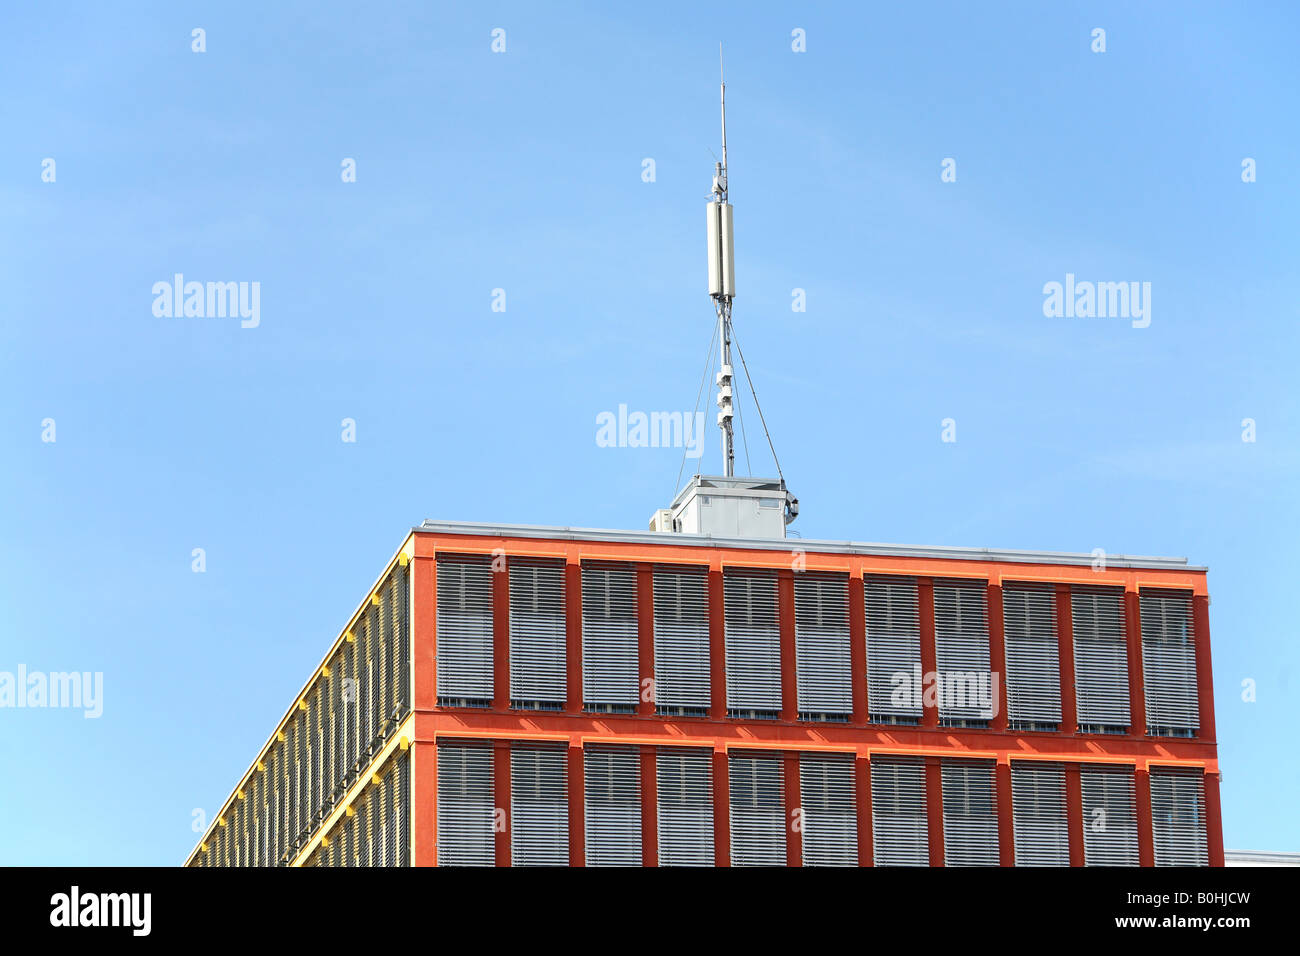 Antenna on the roof of an office tower, Alte Messe Muenchen